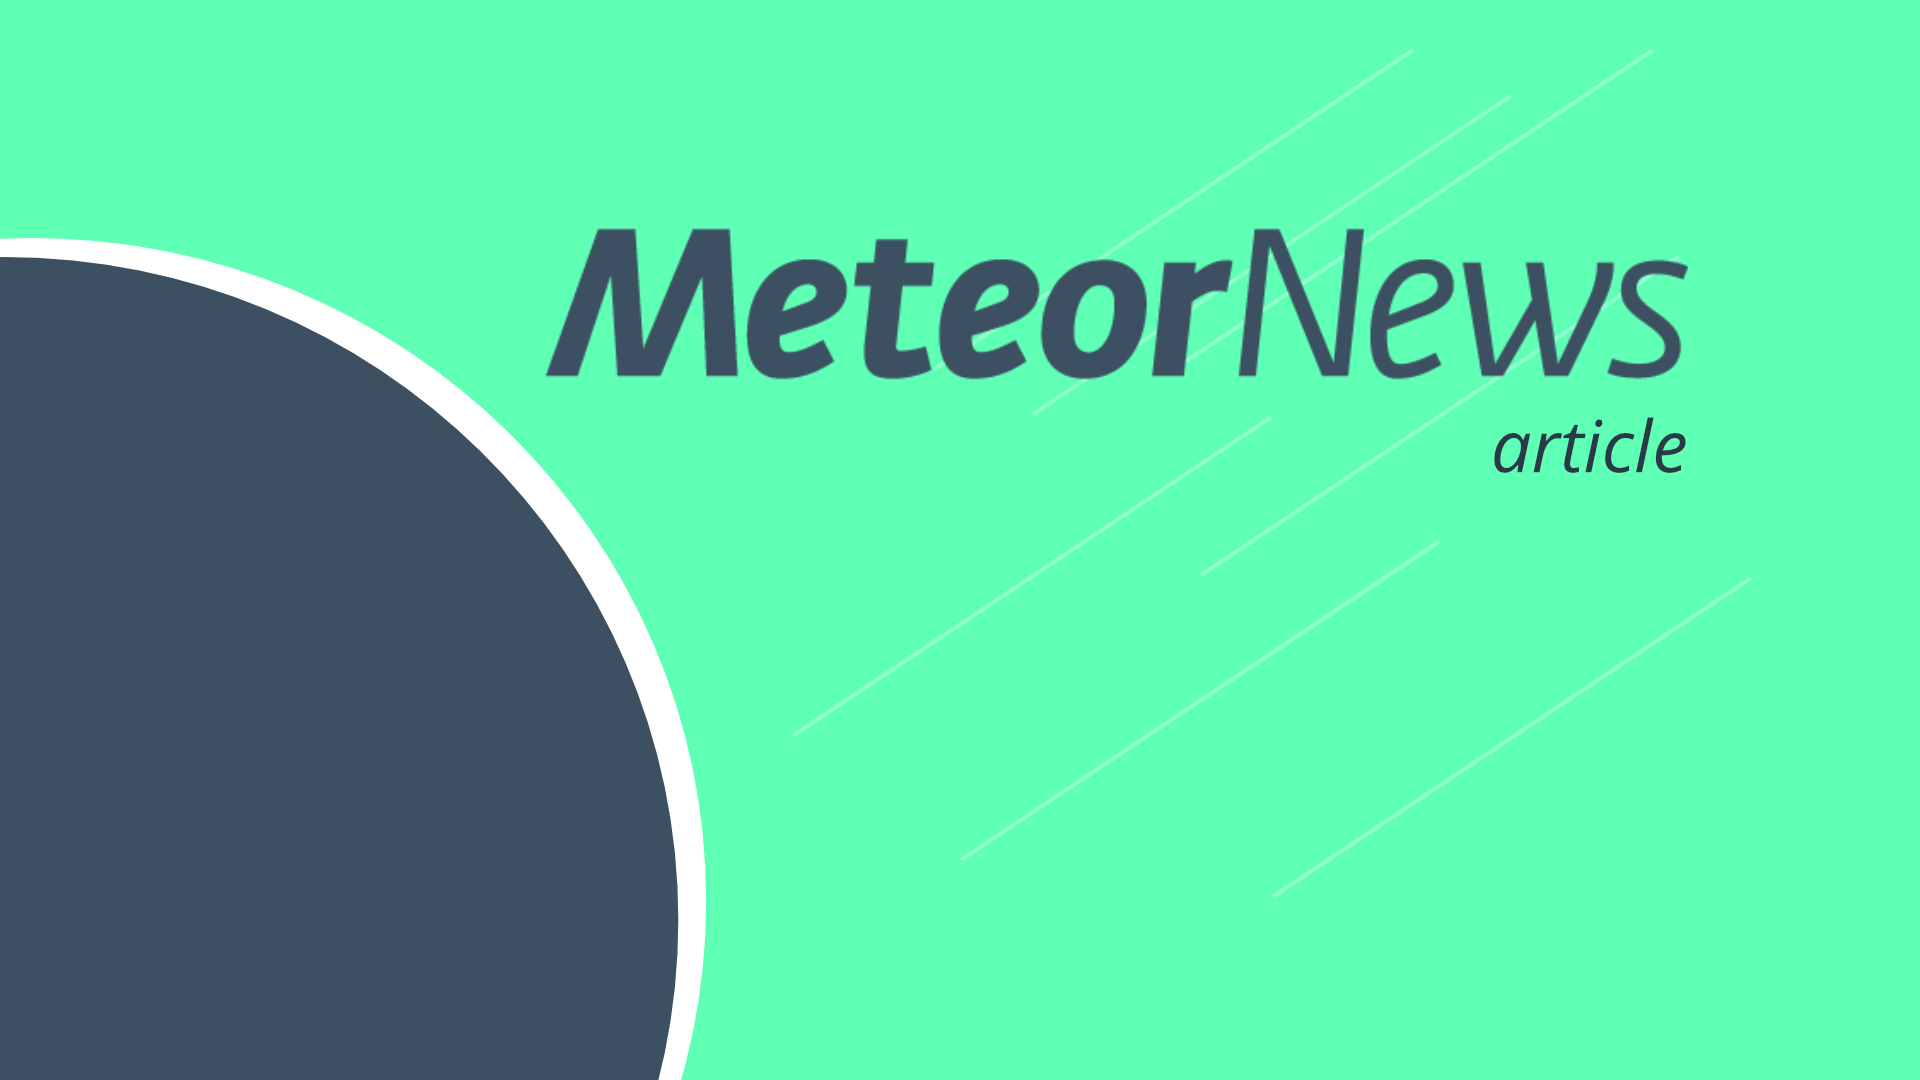 News from the meteor library: June 2, 2016 bolide event